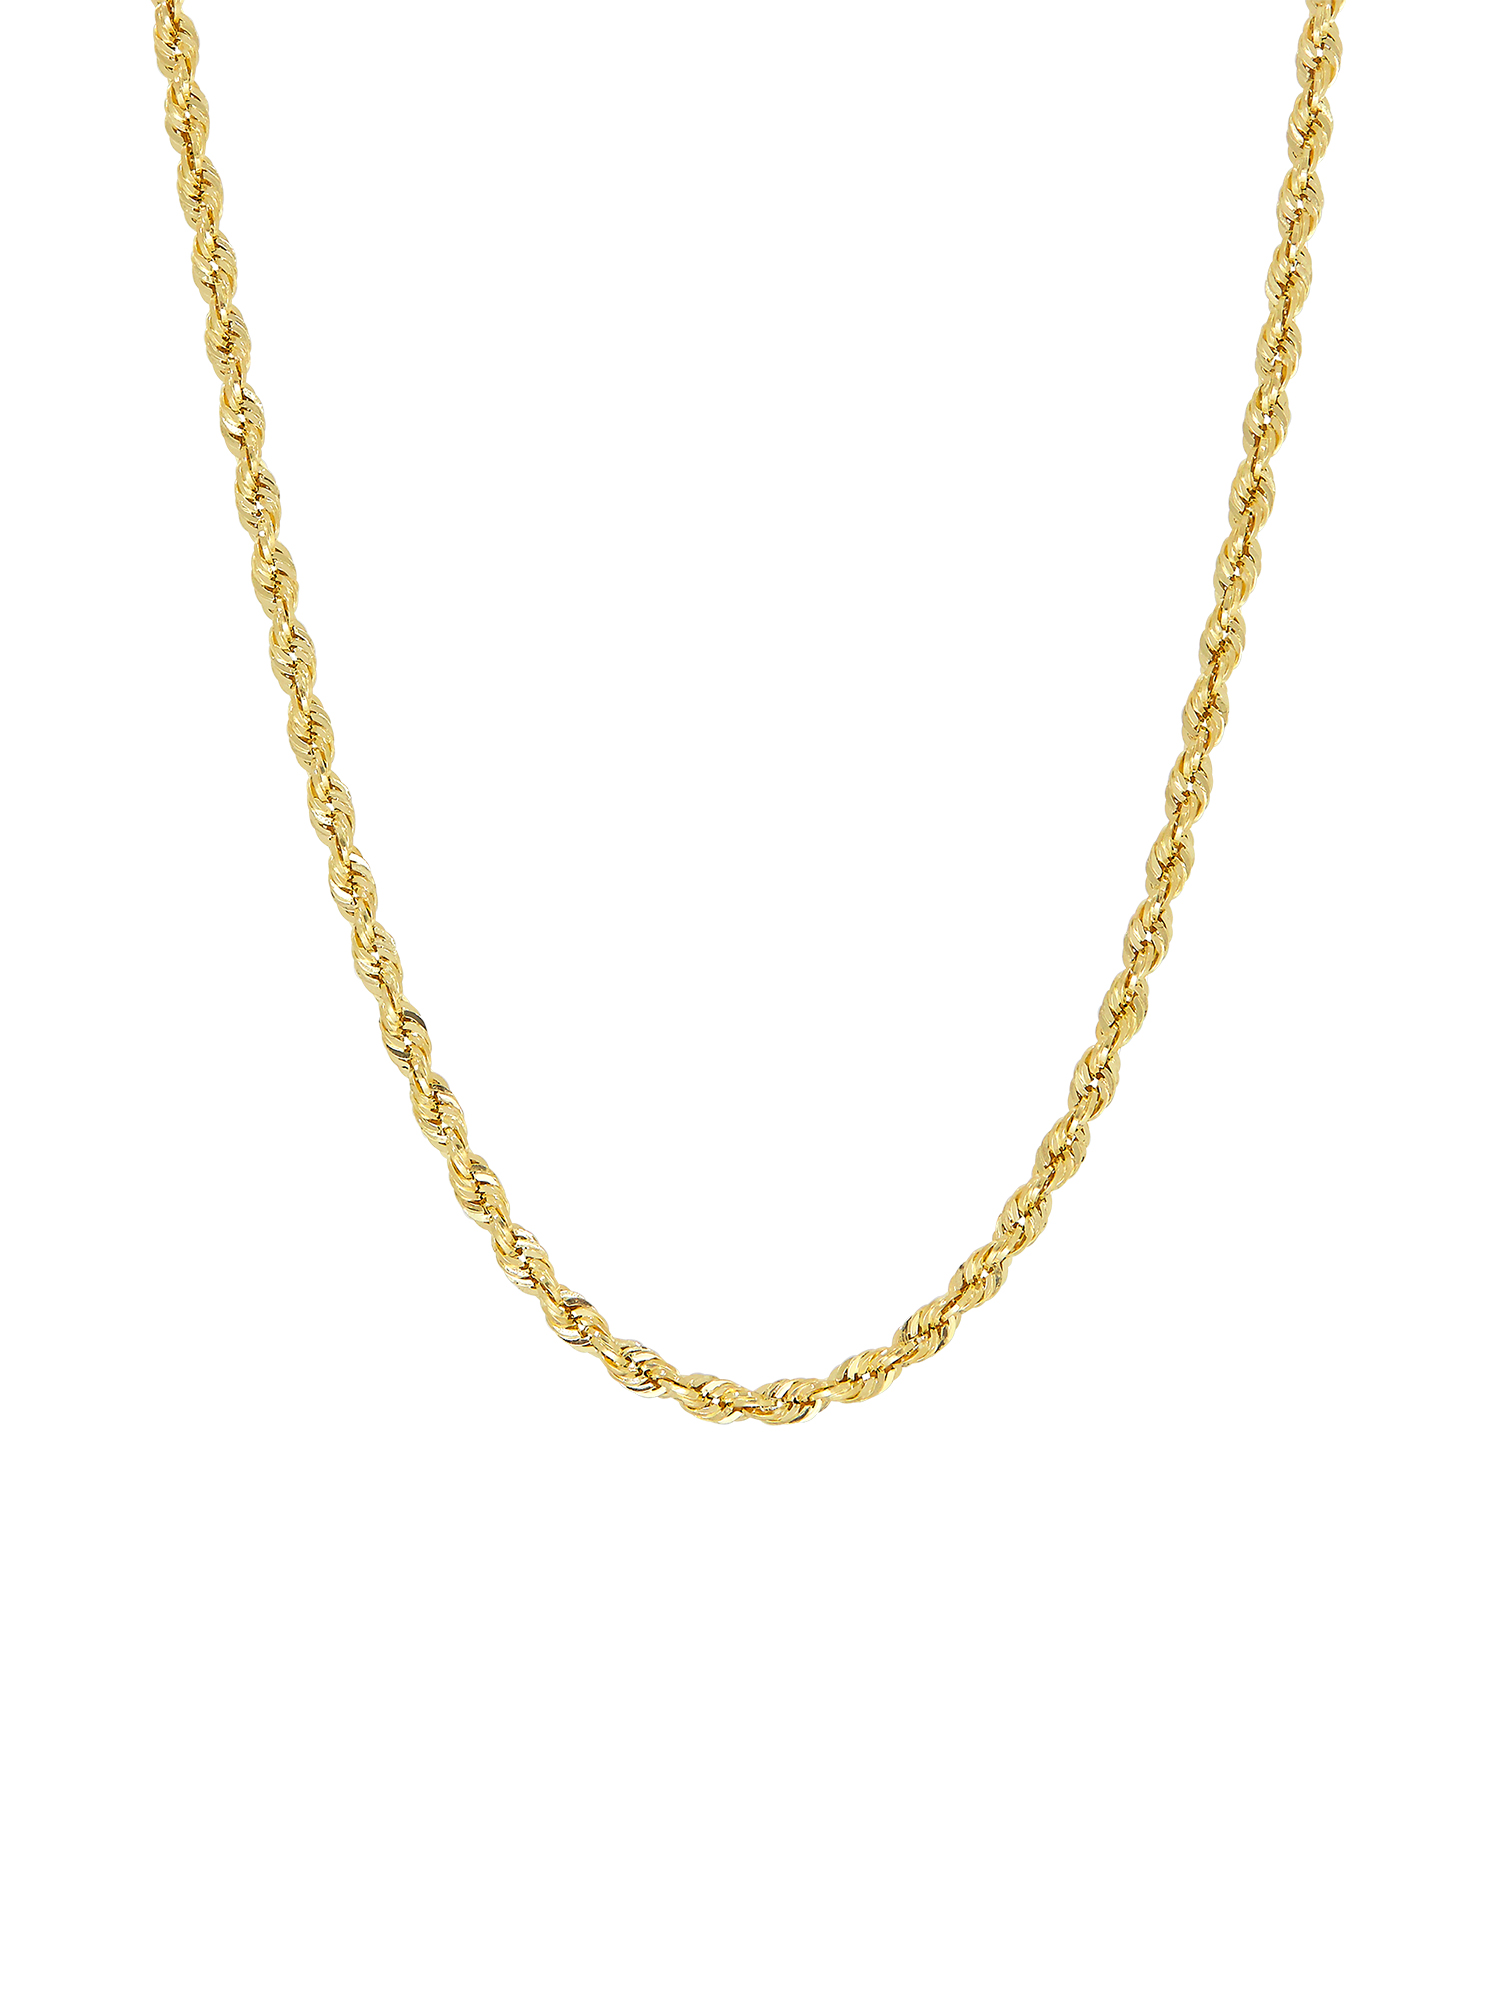 Simply Gold™ 10K Yellow Gold 2.9mm Rope Chain Necklace, 22""